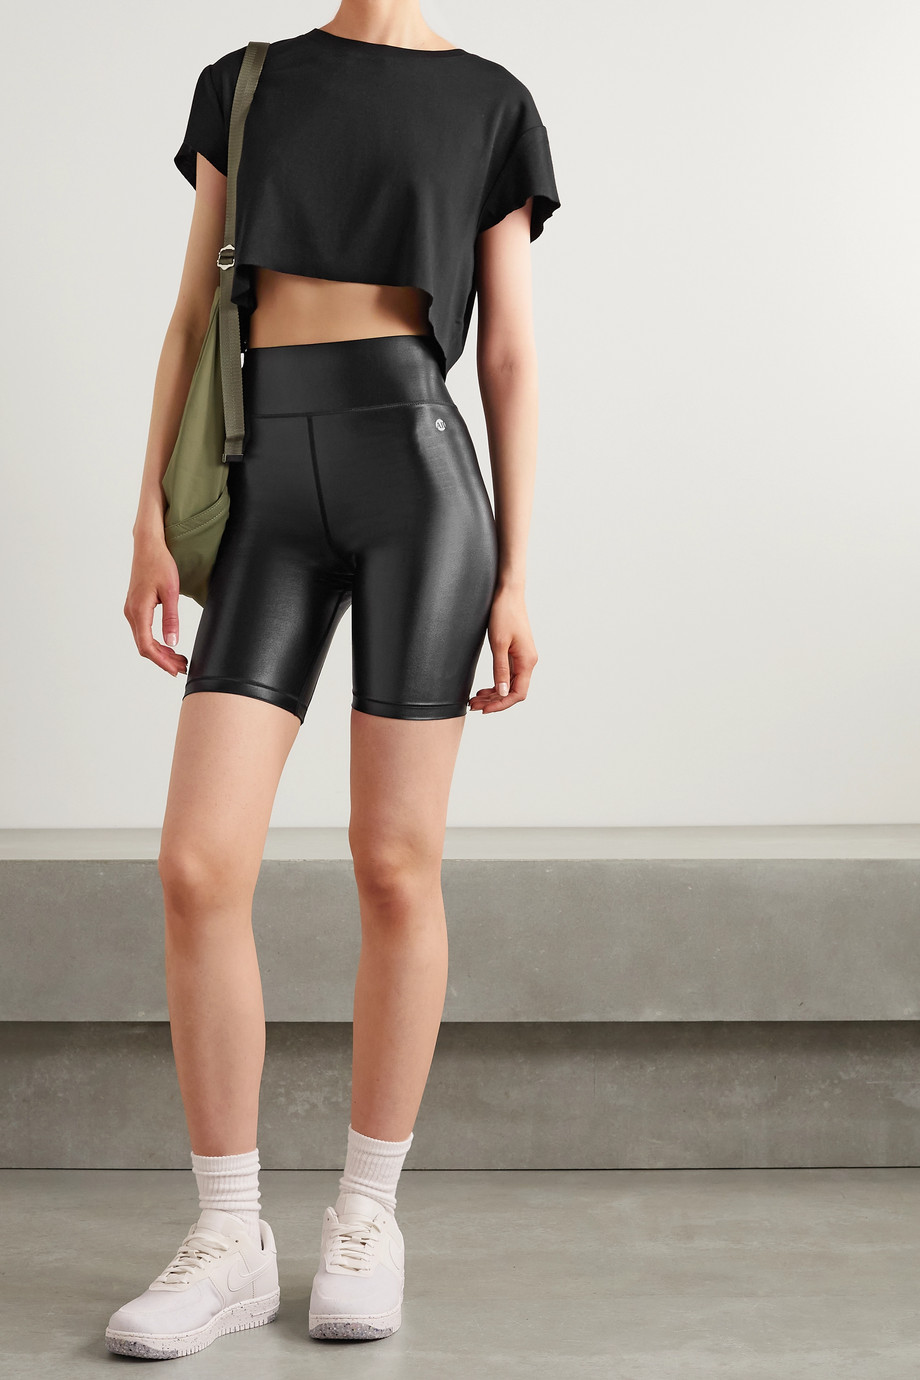 All Access Center Stage stretch shorts